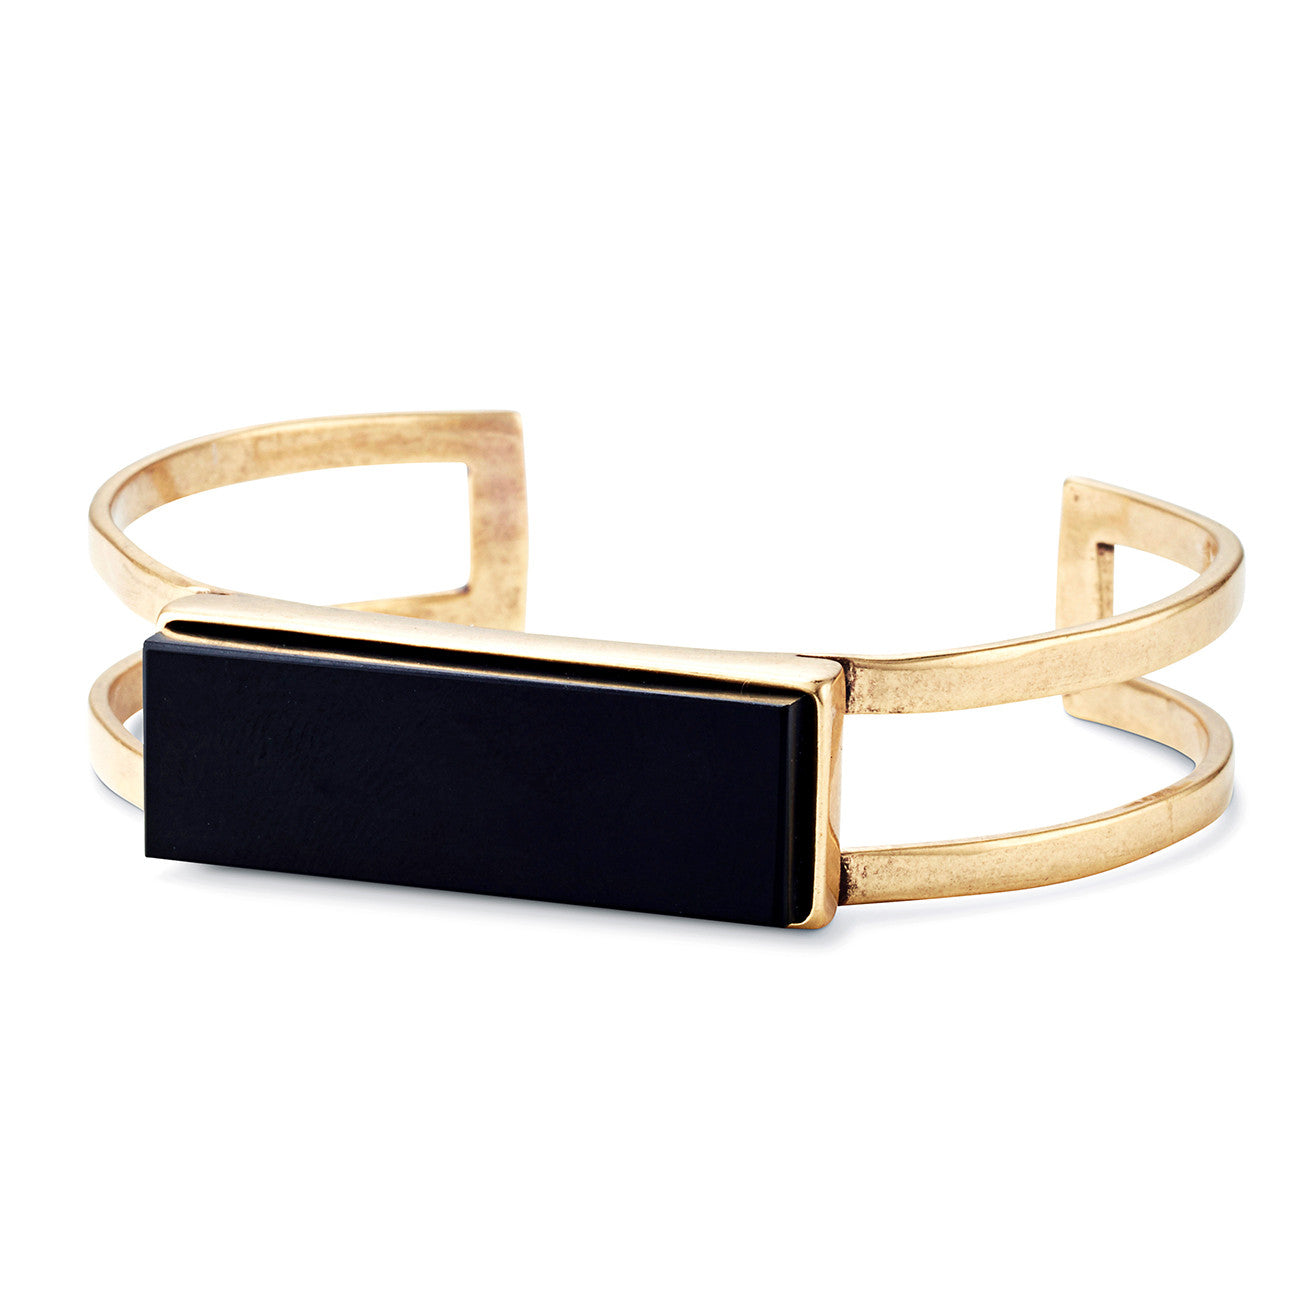 Lizzie Cuff by Jenny Bird in Gold Ox with Black Resin Stone